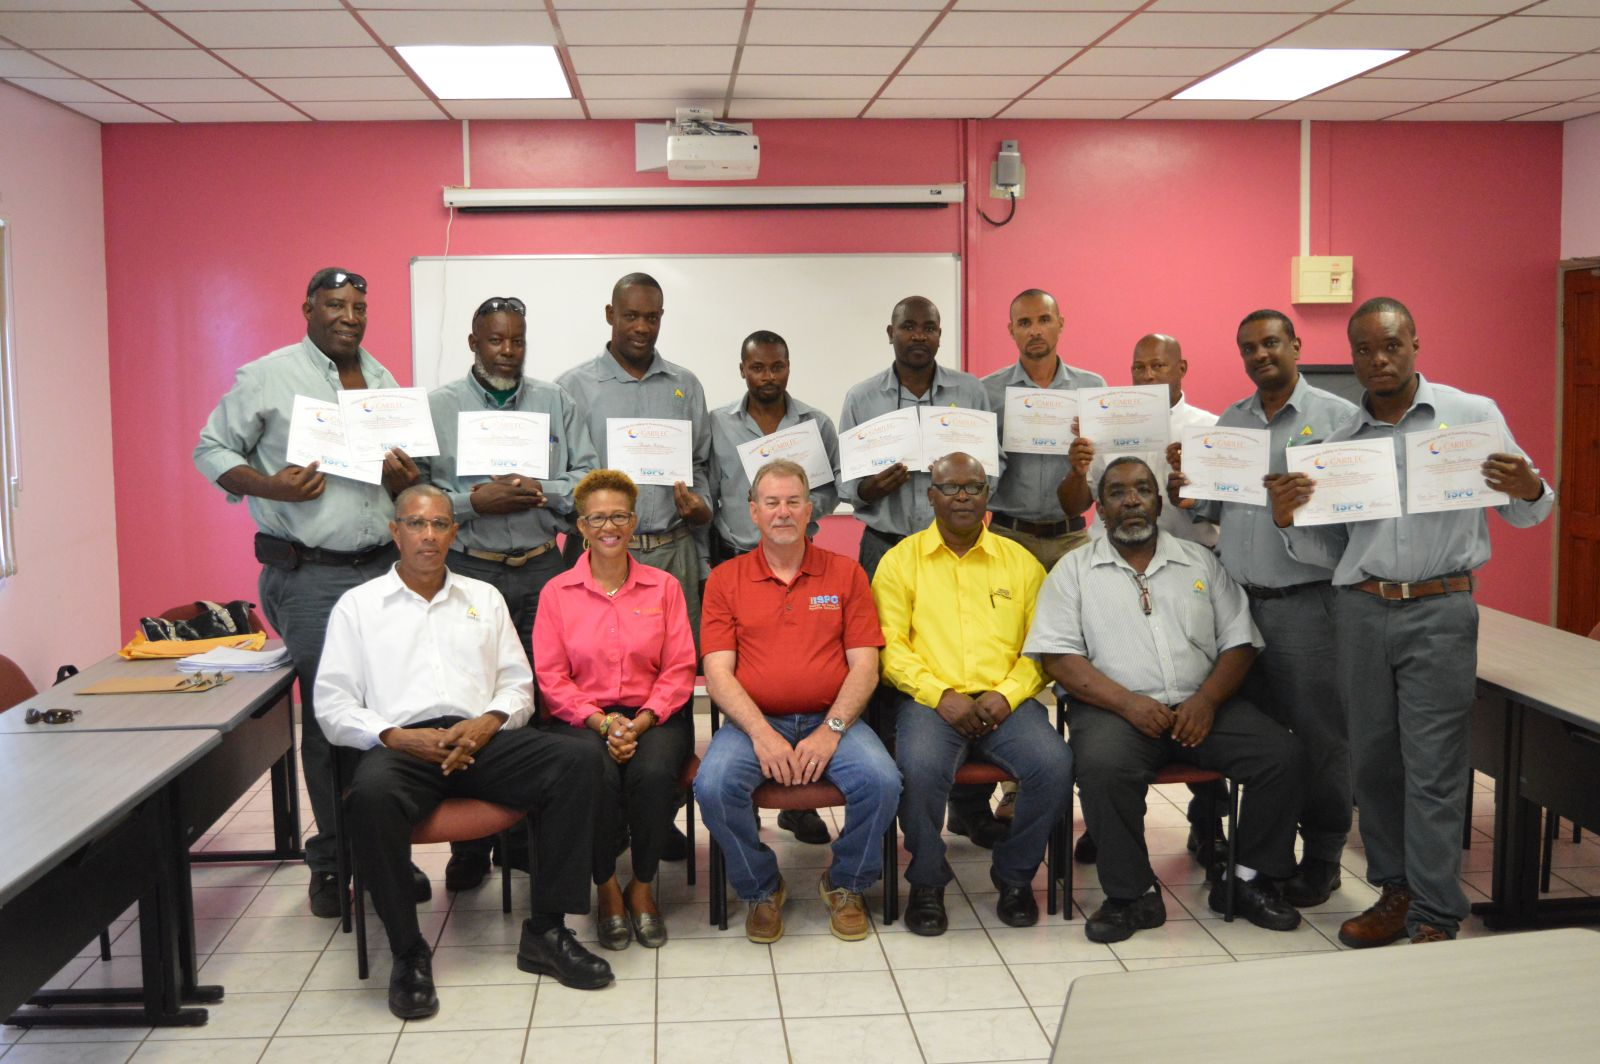 VINLEC linemen with local facilitators and external examiners